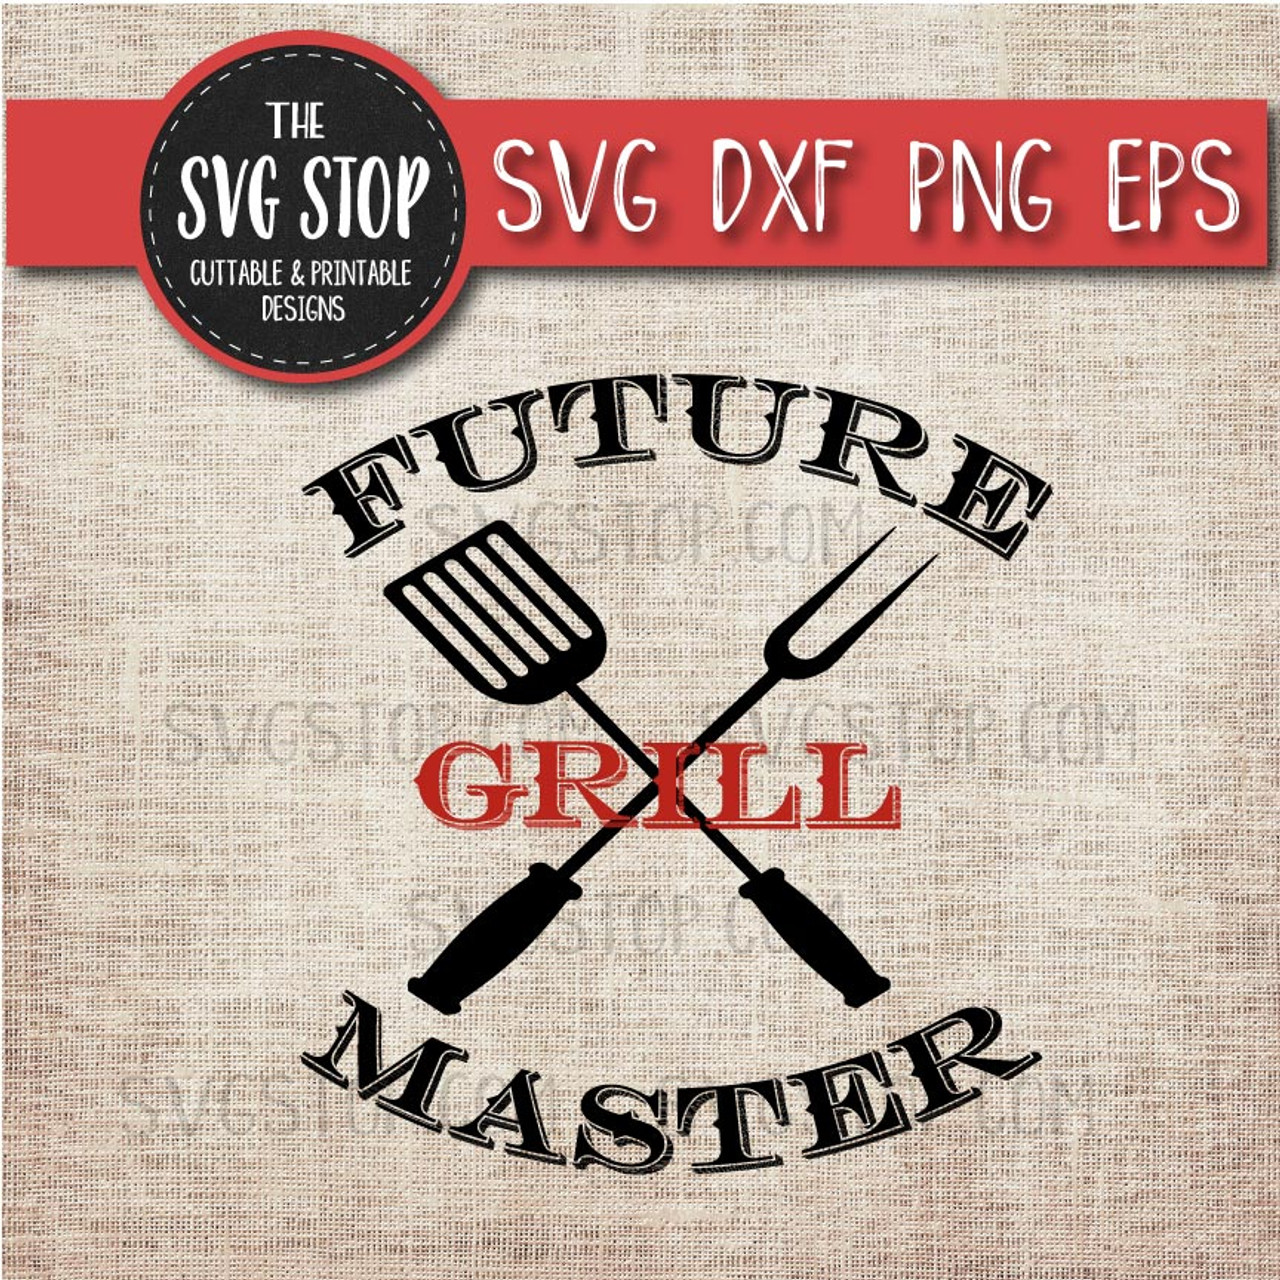 Future Grill Master - Grill - Summer - BBQ - Svg Dxf Png Eps - Clipart -  Cut File